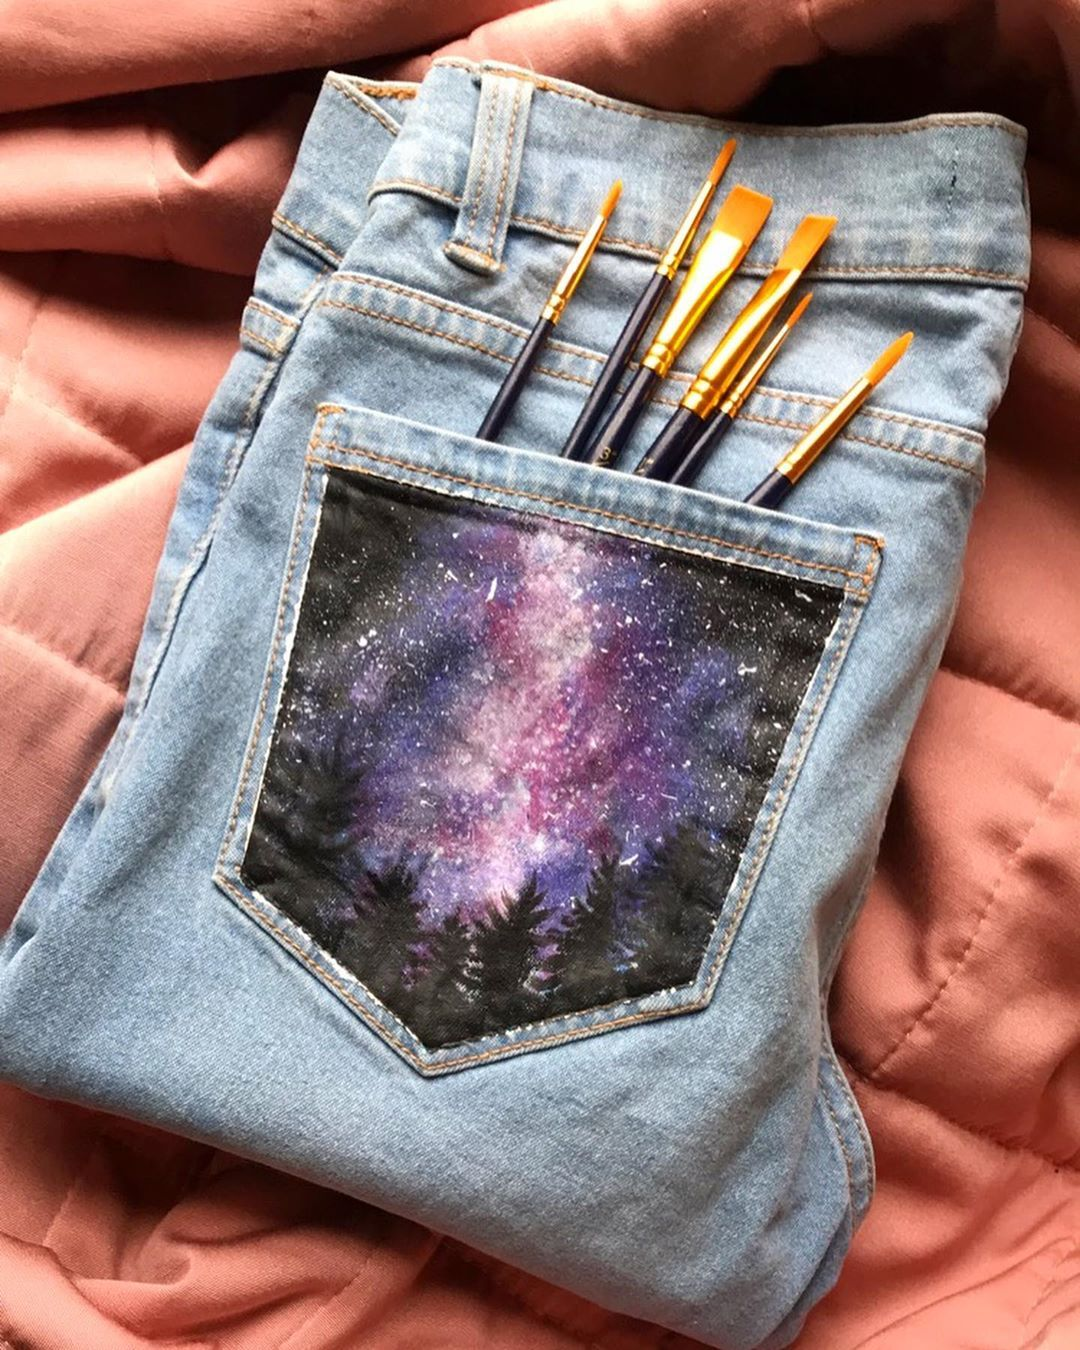 "Maddie 🌻🤵 on Instagram: ""Pocket paint 💫🎨 Starry sky denim jeans pocket painting ♥️ - Fc: 3723 - Using Crawford and Black acrylics on @zara jeans . . . #art #artsy…"""